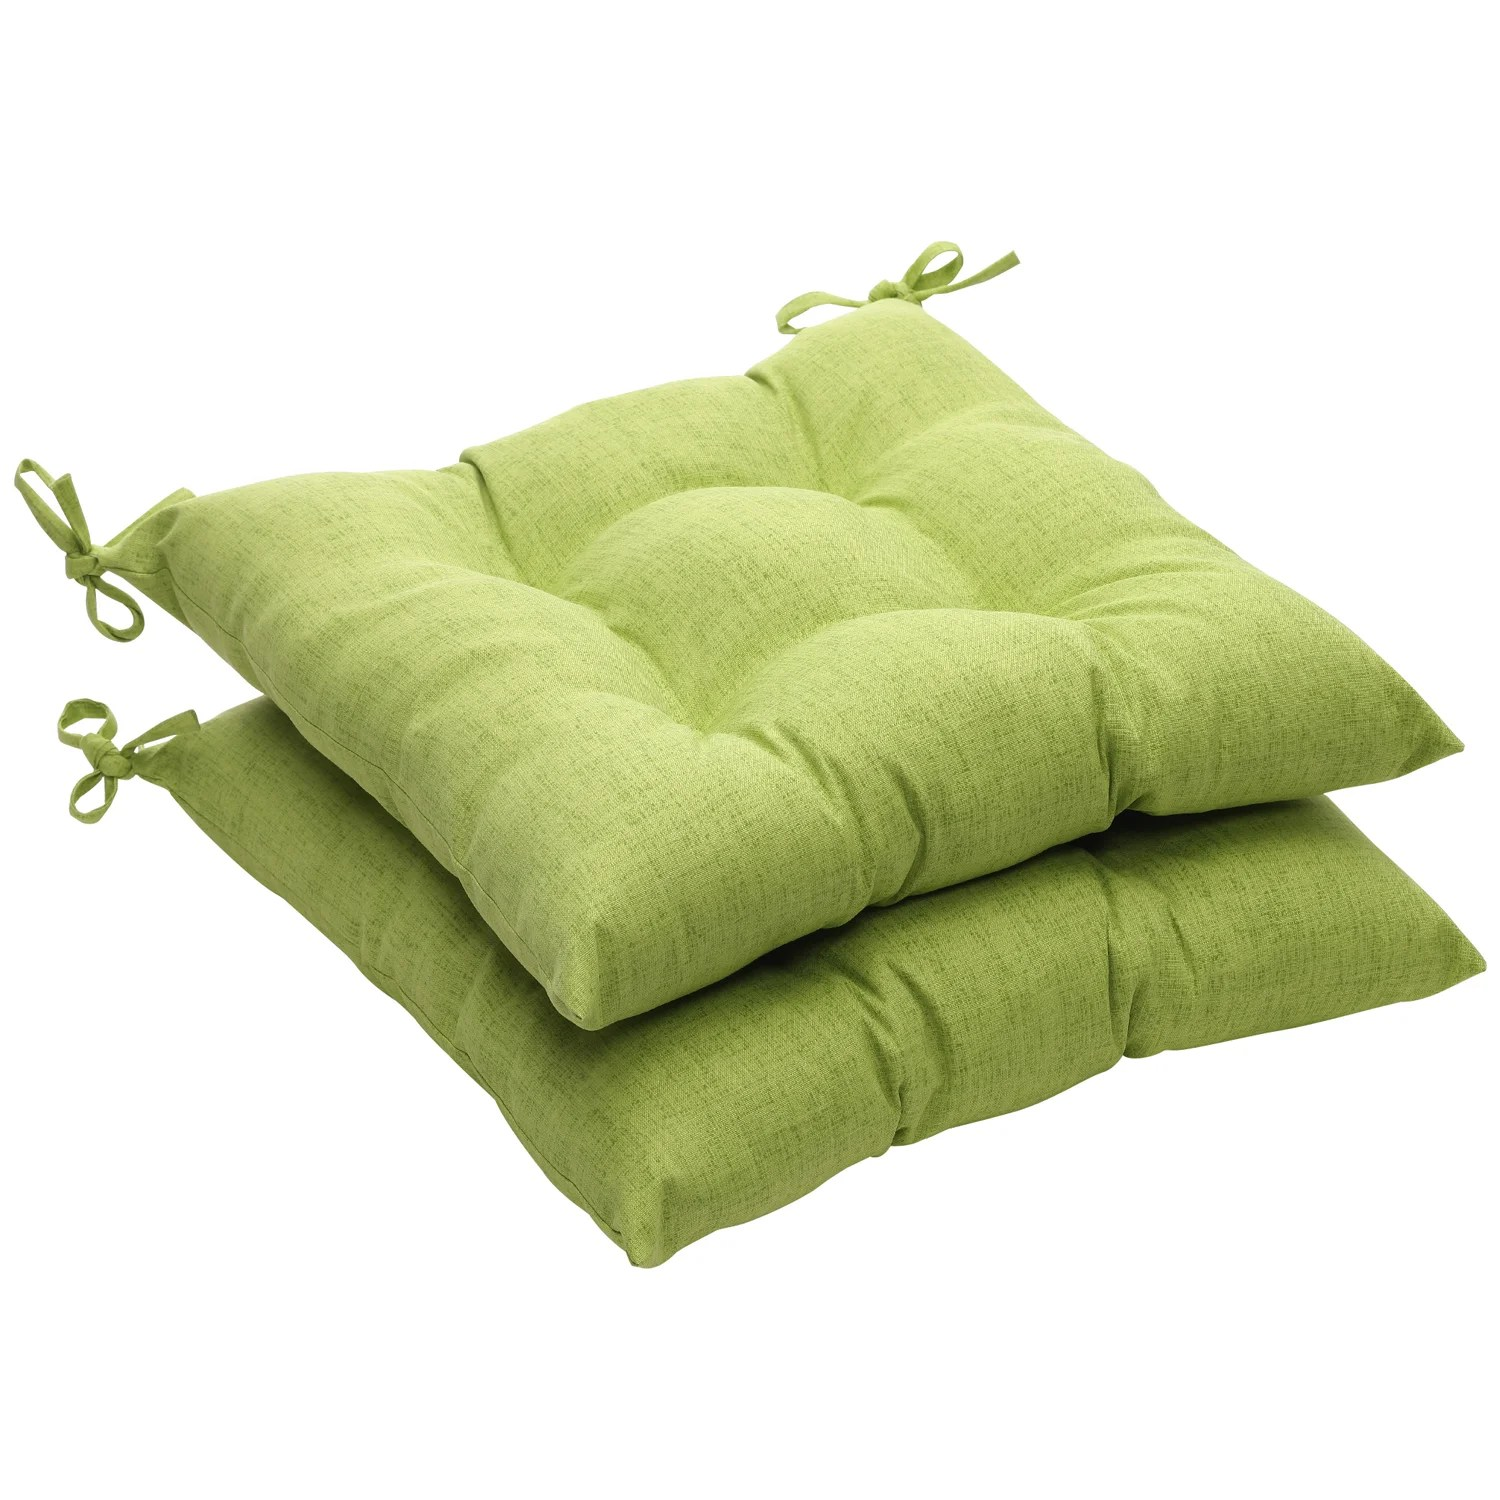 green chair cushions dining covers cape town solid textured outdoor tufted seat set of